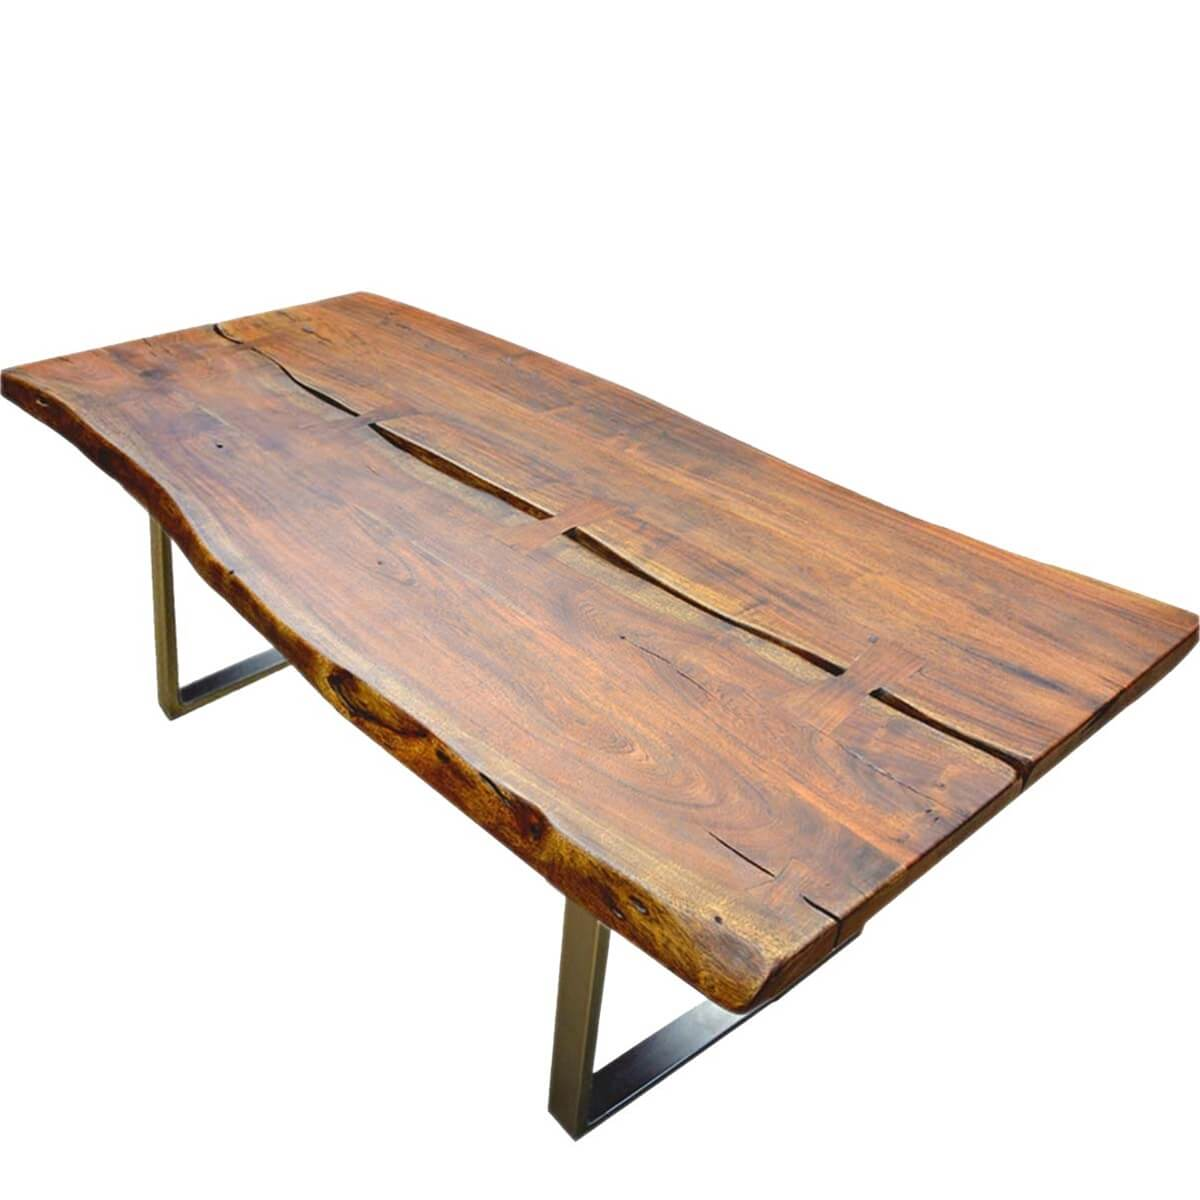 Edge Acacia Wood Iron Rustic Large Dining Table